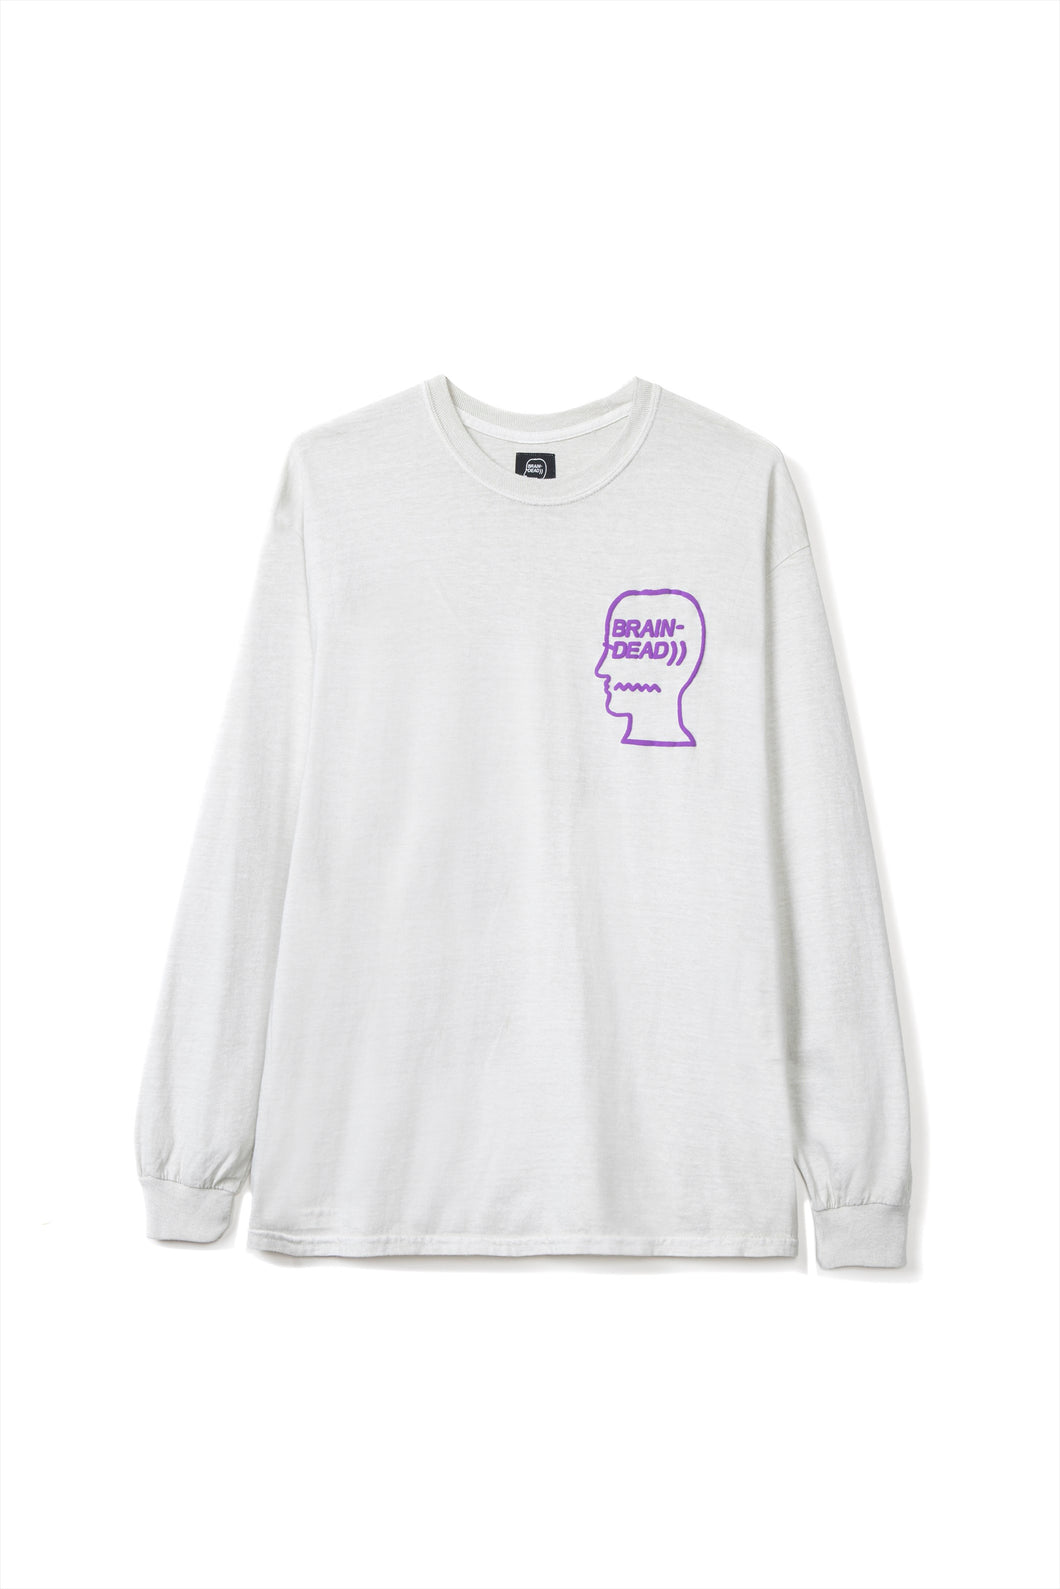 Brain Dead - VIBRATION LONG SLEEVE TEE